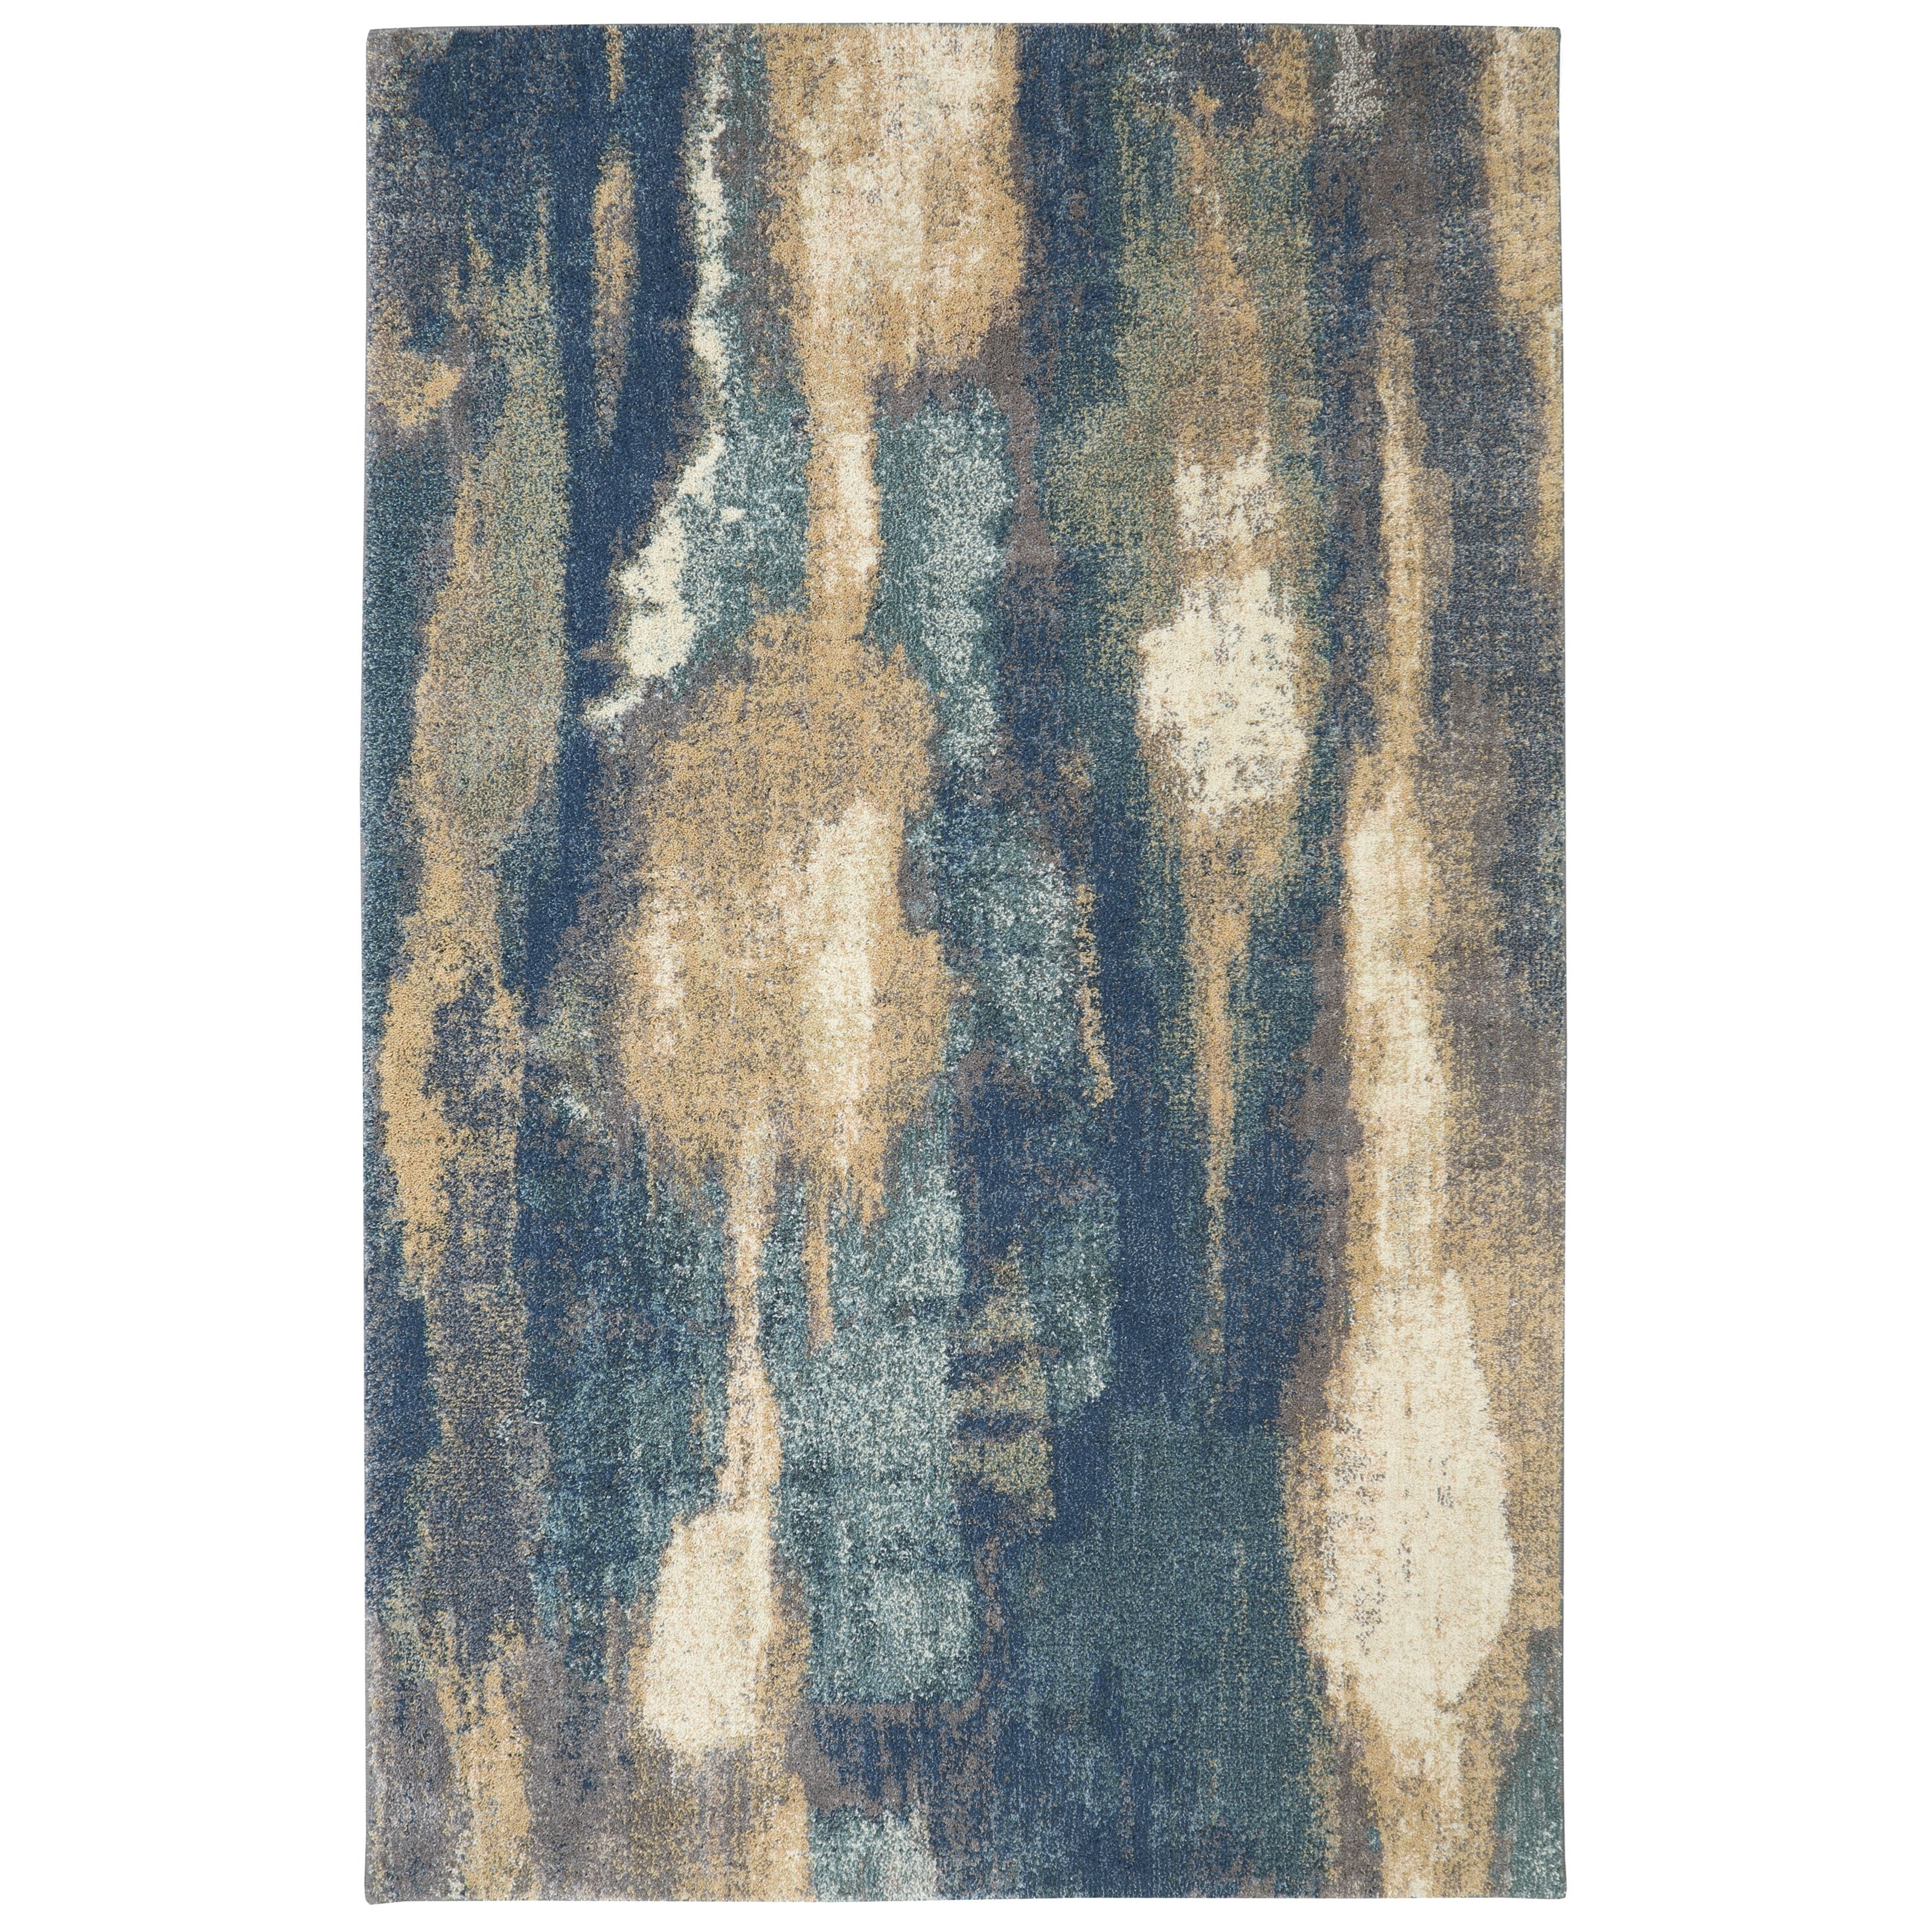 Berkshire 5'x8' Wendall Blue Area Rug by American Rug Craftsmen at Alison Craig Home Furnishings